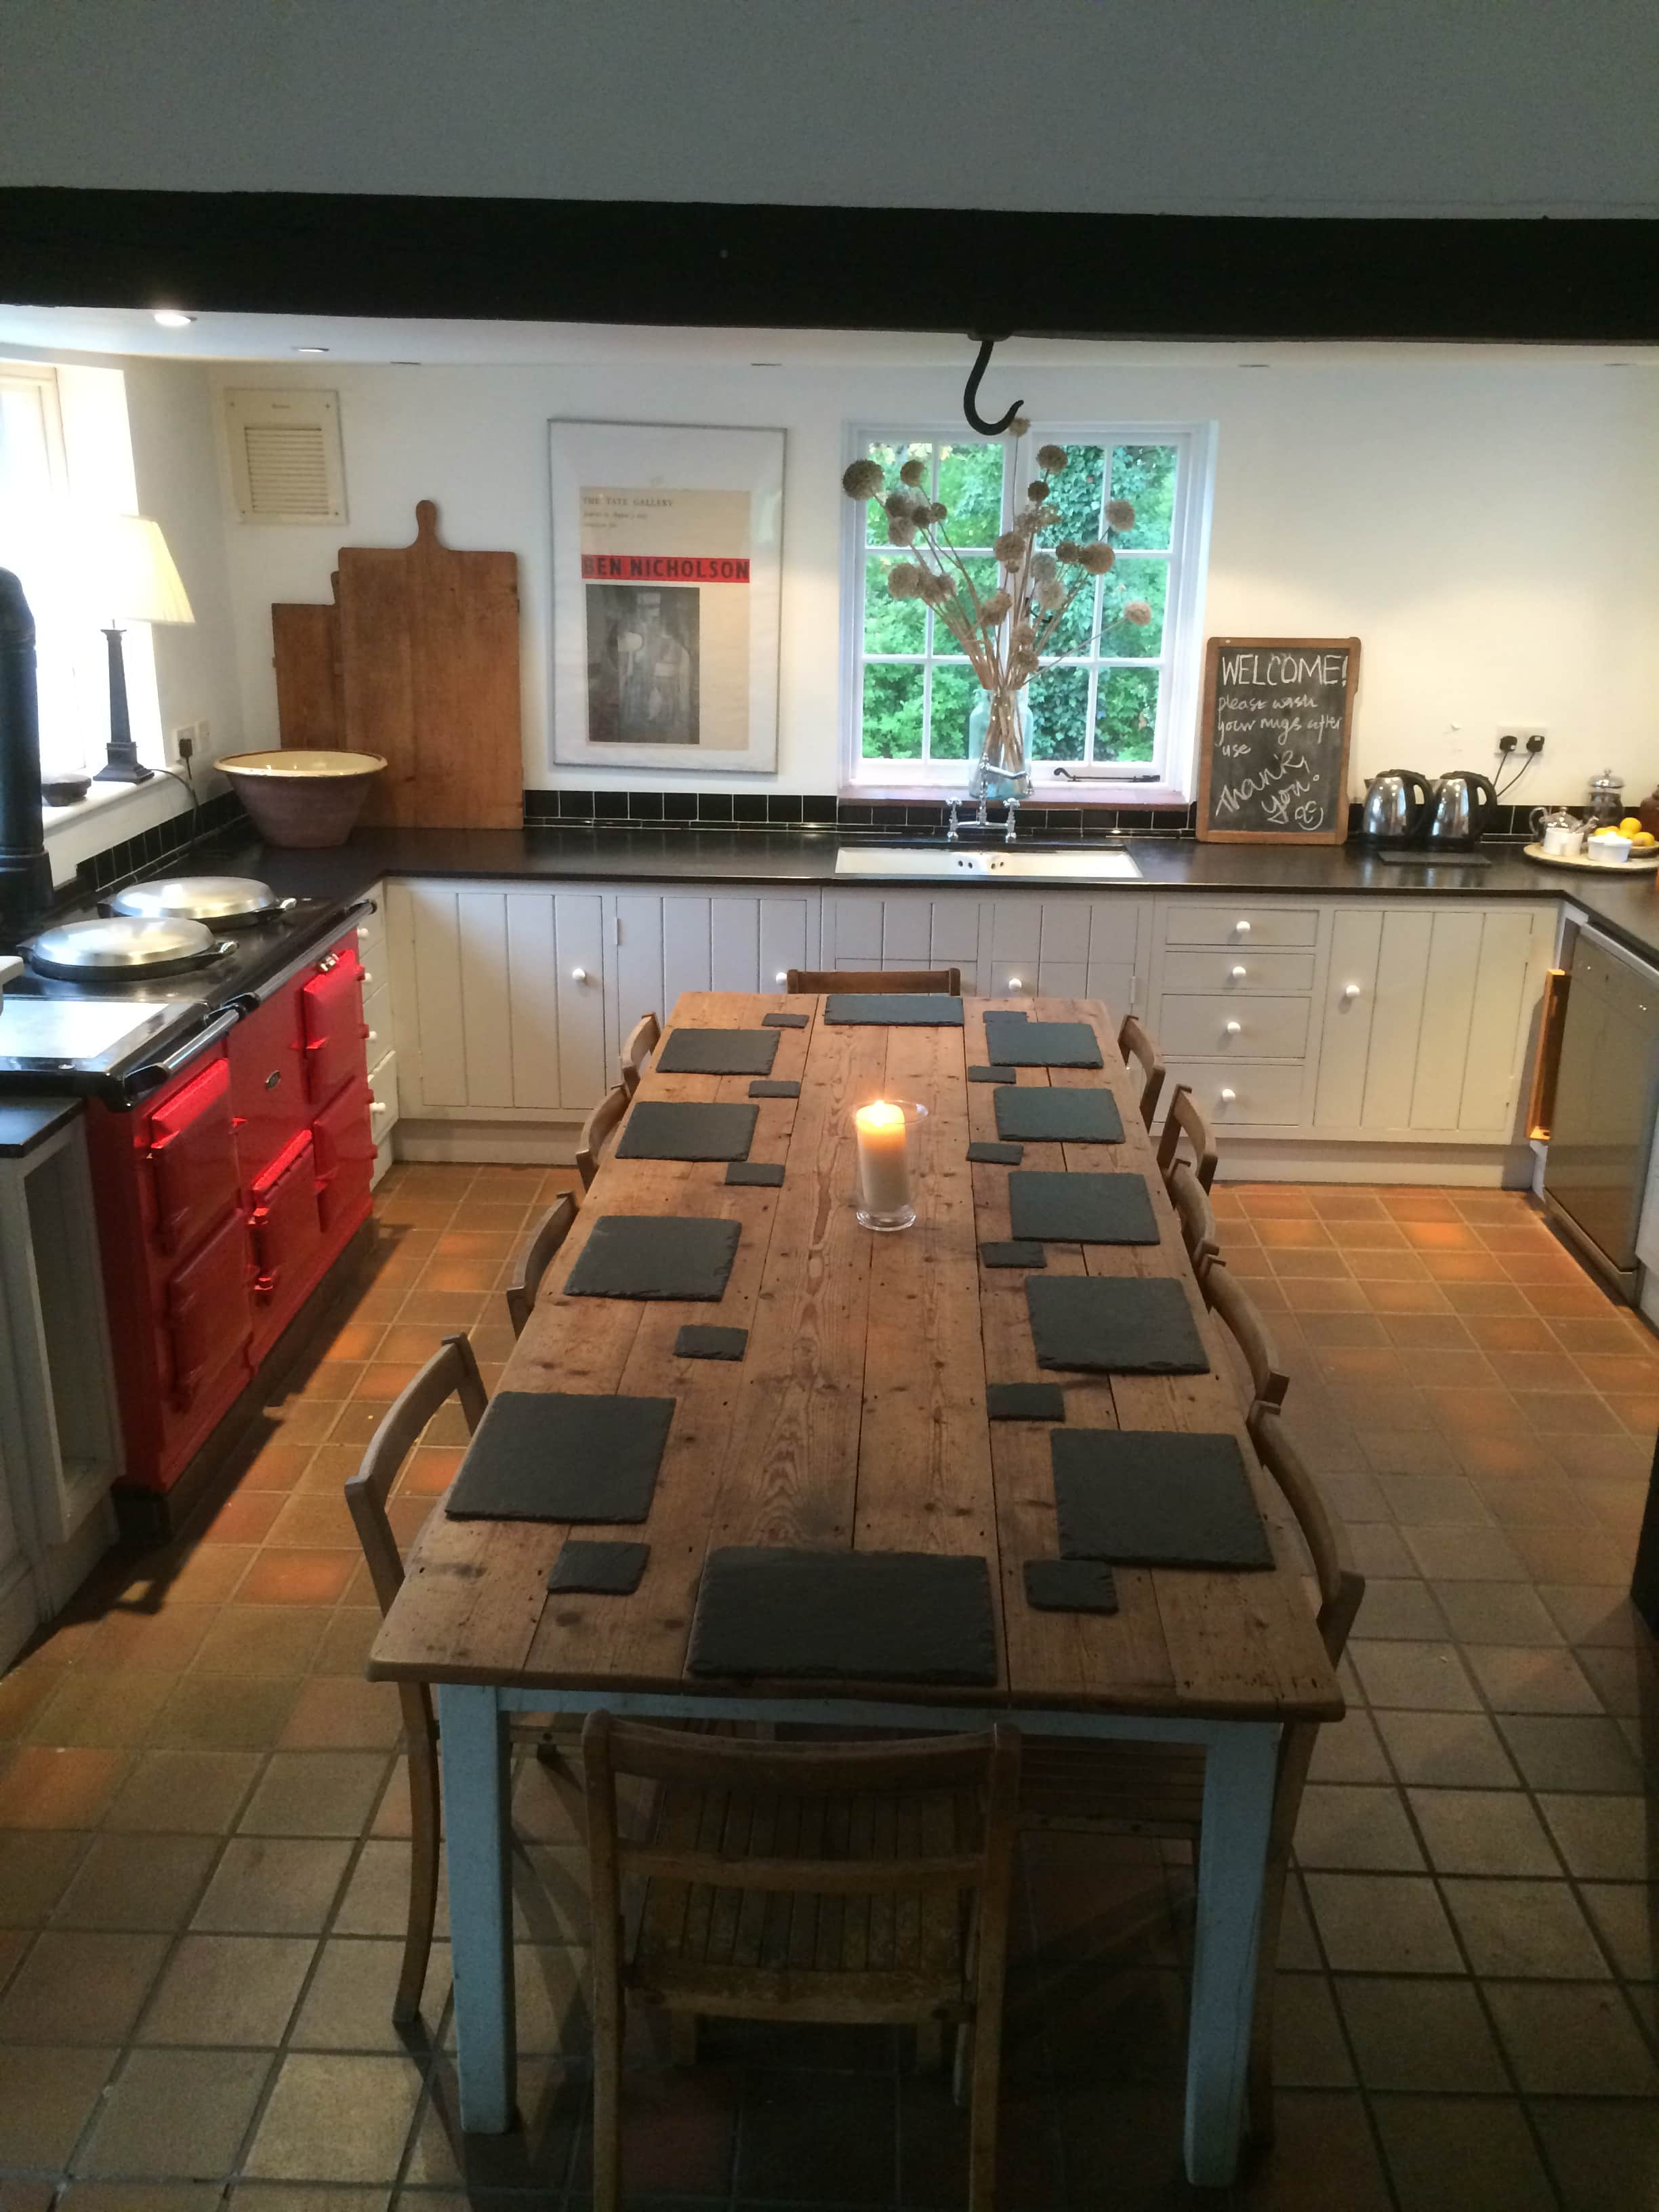 The country kitchen at Tilton House in the Sussex Downs, location for the YogaWithVickiB ladies-only